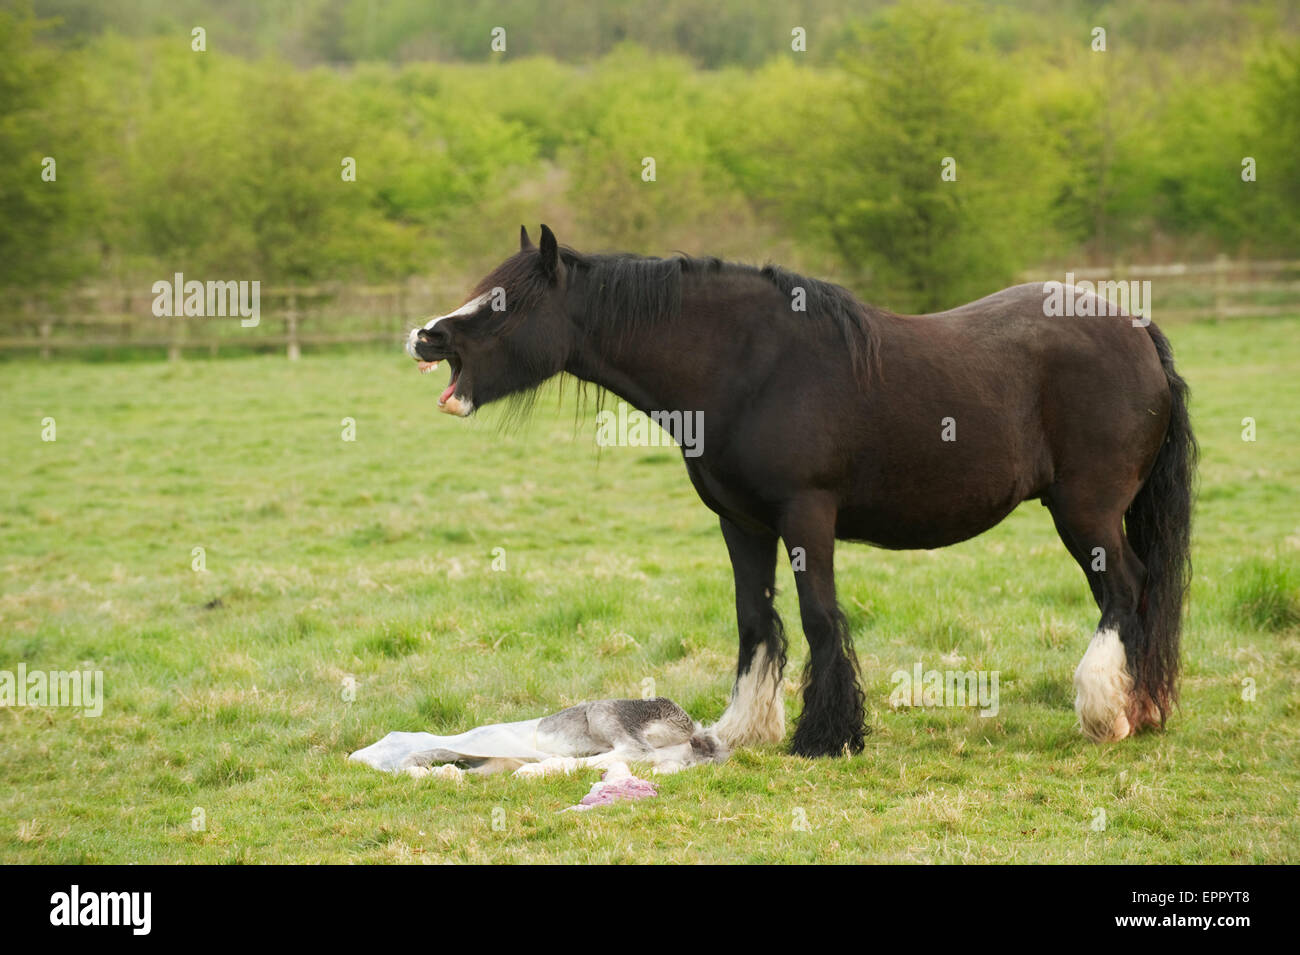 Horse mourning her dead still born foal - Stock Image